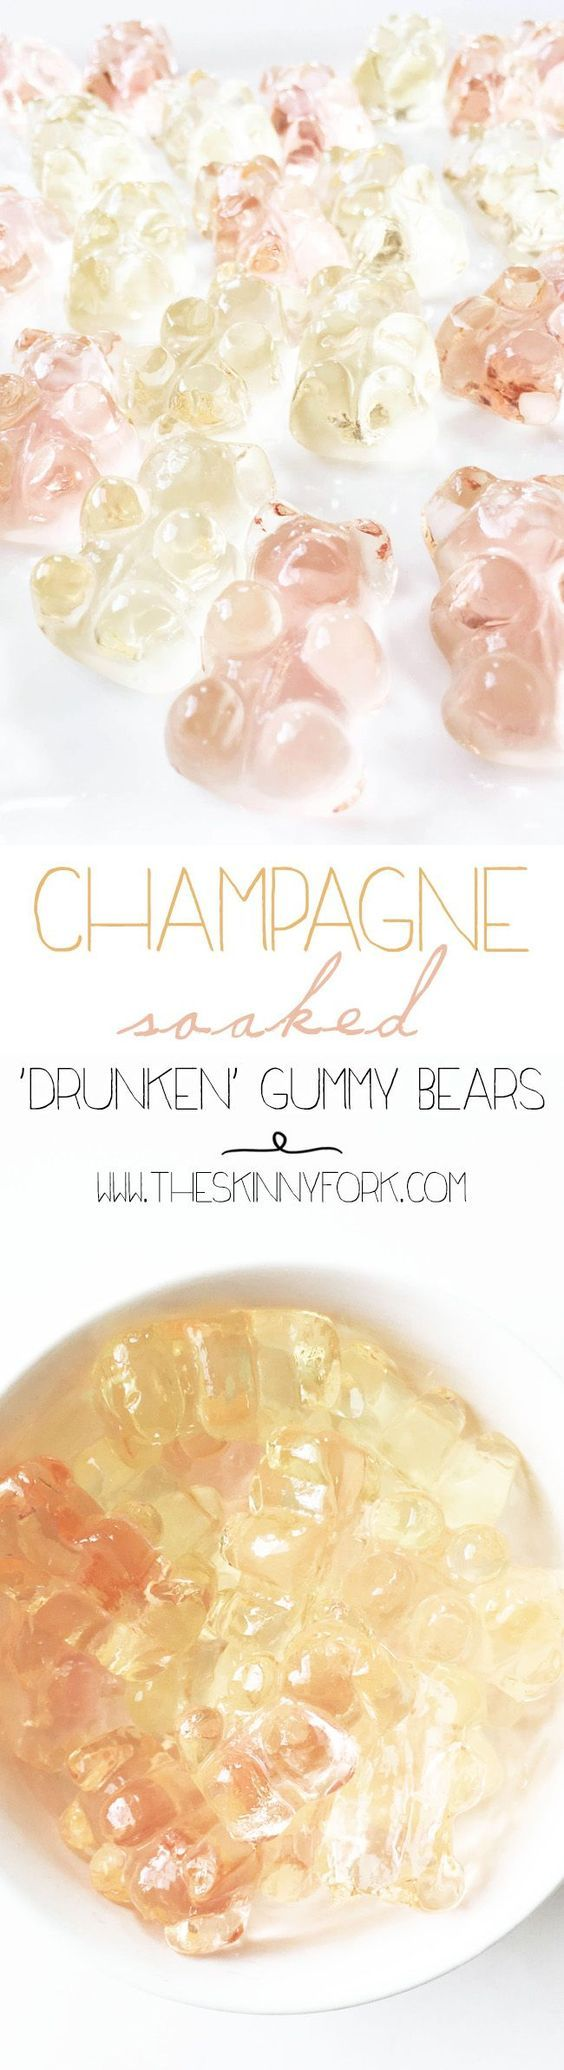 Champagne Soaked 'Drunken' Gummy Bears - Yummy bears that are full of champagne goodness! Happy Mother's Day! TheSkinnyFork.com | Skinny & Healthy Recipes